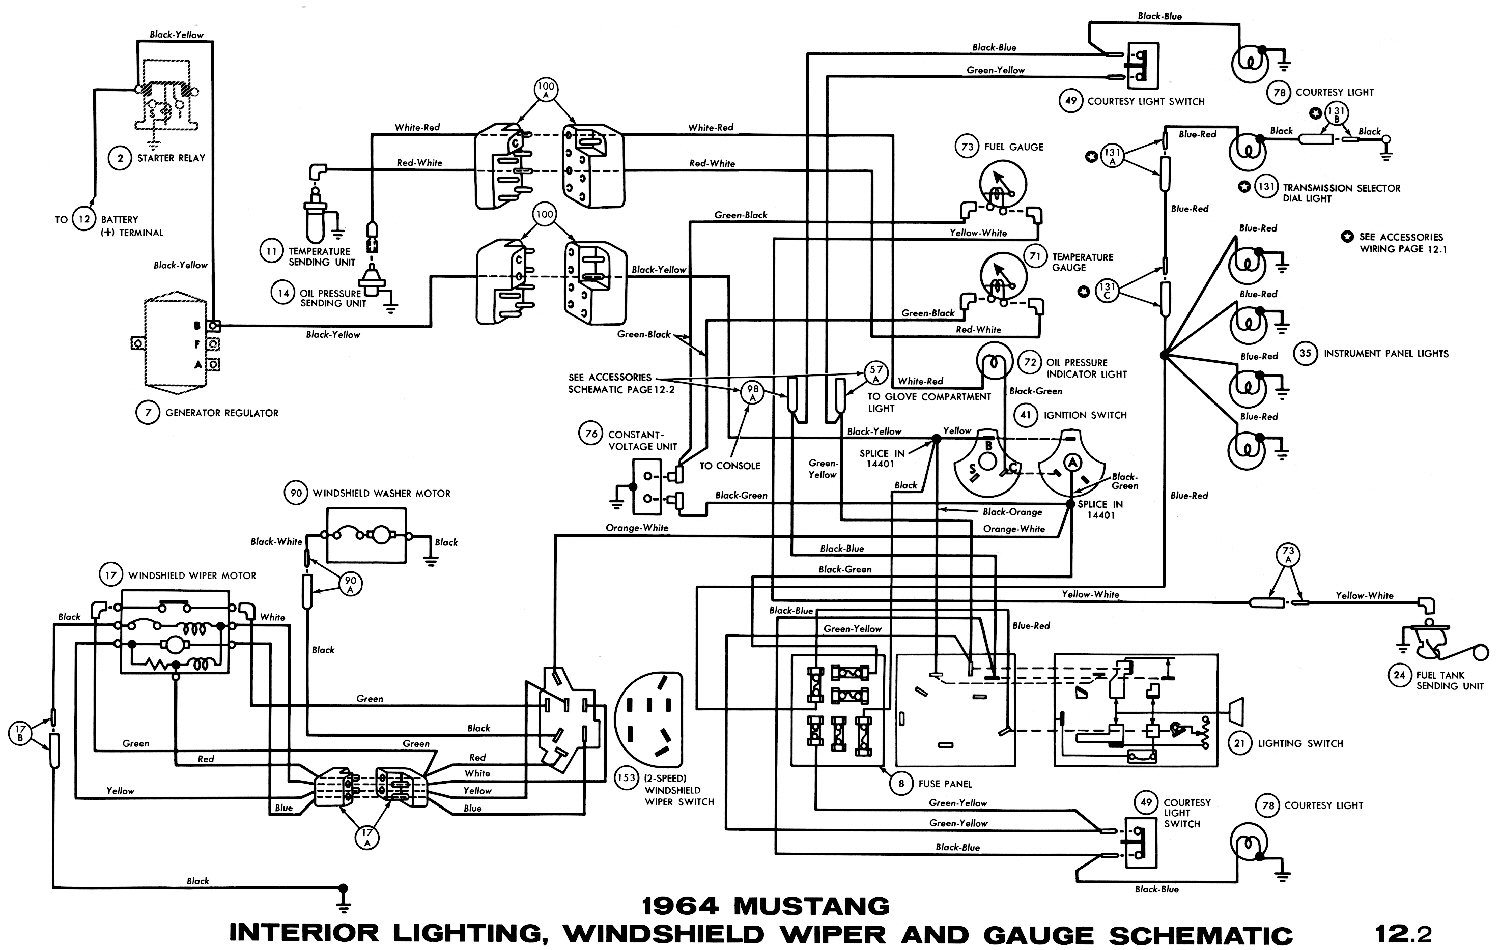 1964 Mustang Wiring Diagrams Average Joe Restoration Auto Manual Switch Diagram Oil Pressure